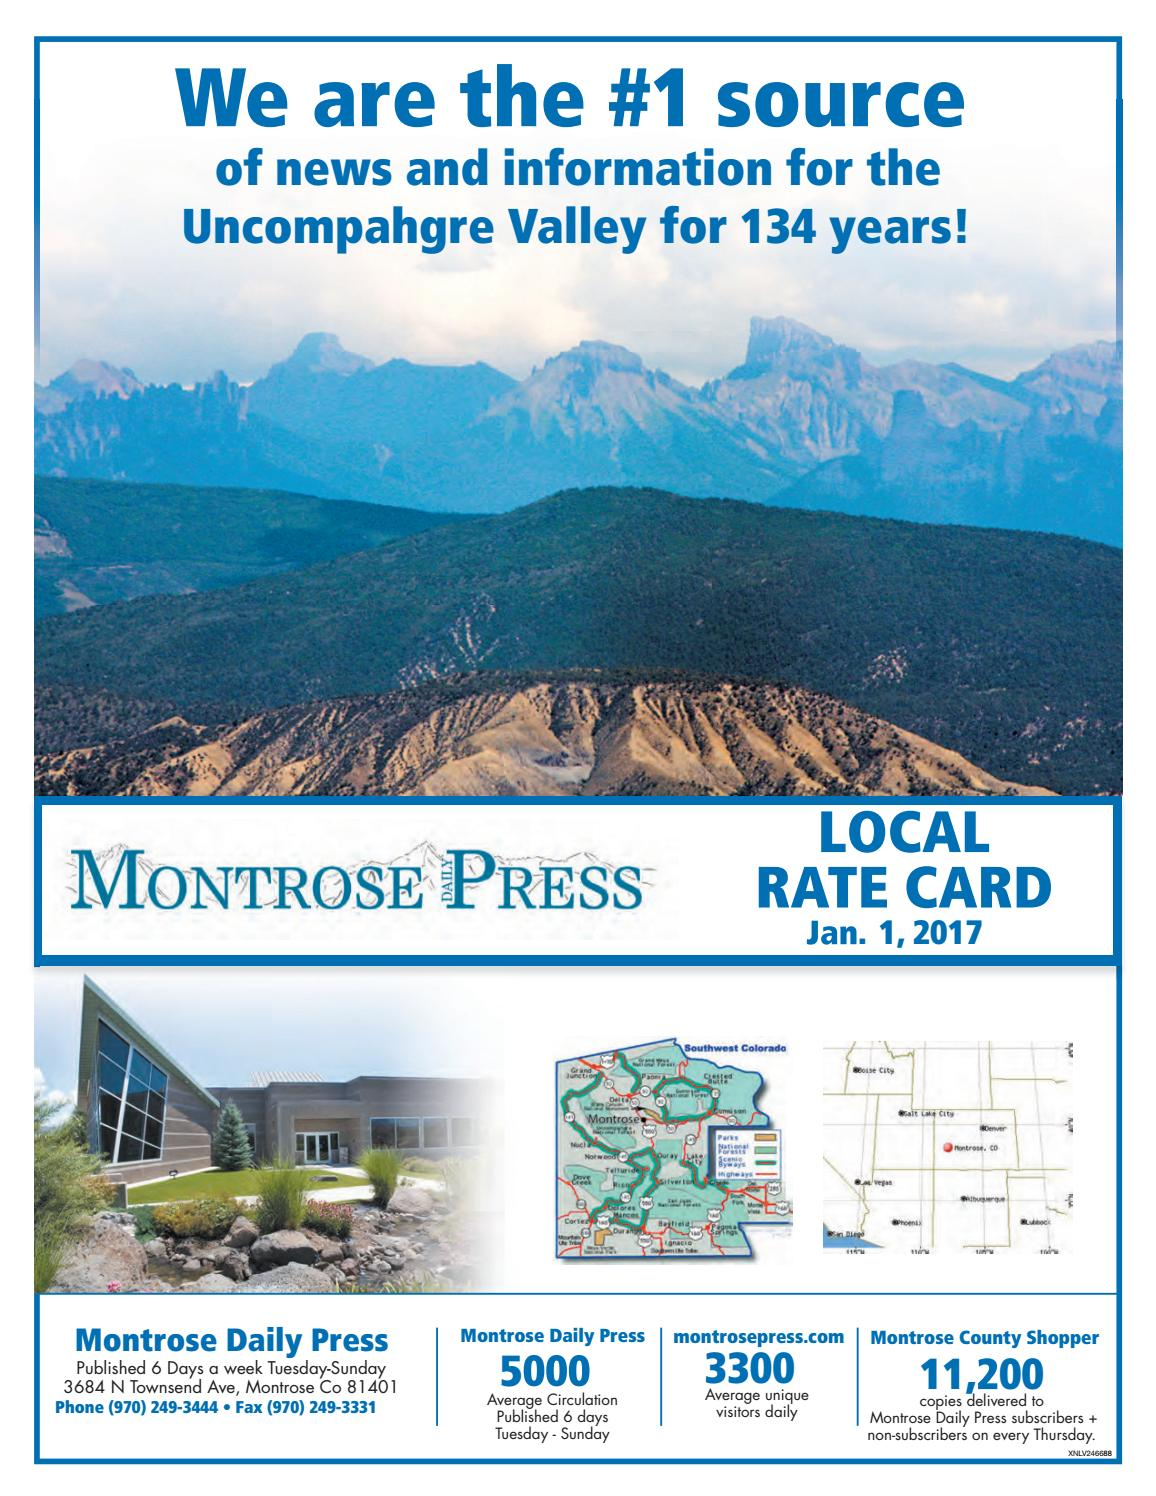 Montrose daily press 2017 rate card by Wick Communications ...